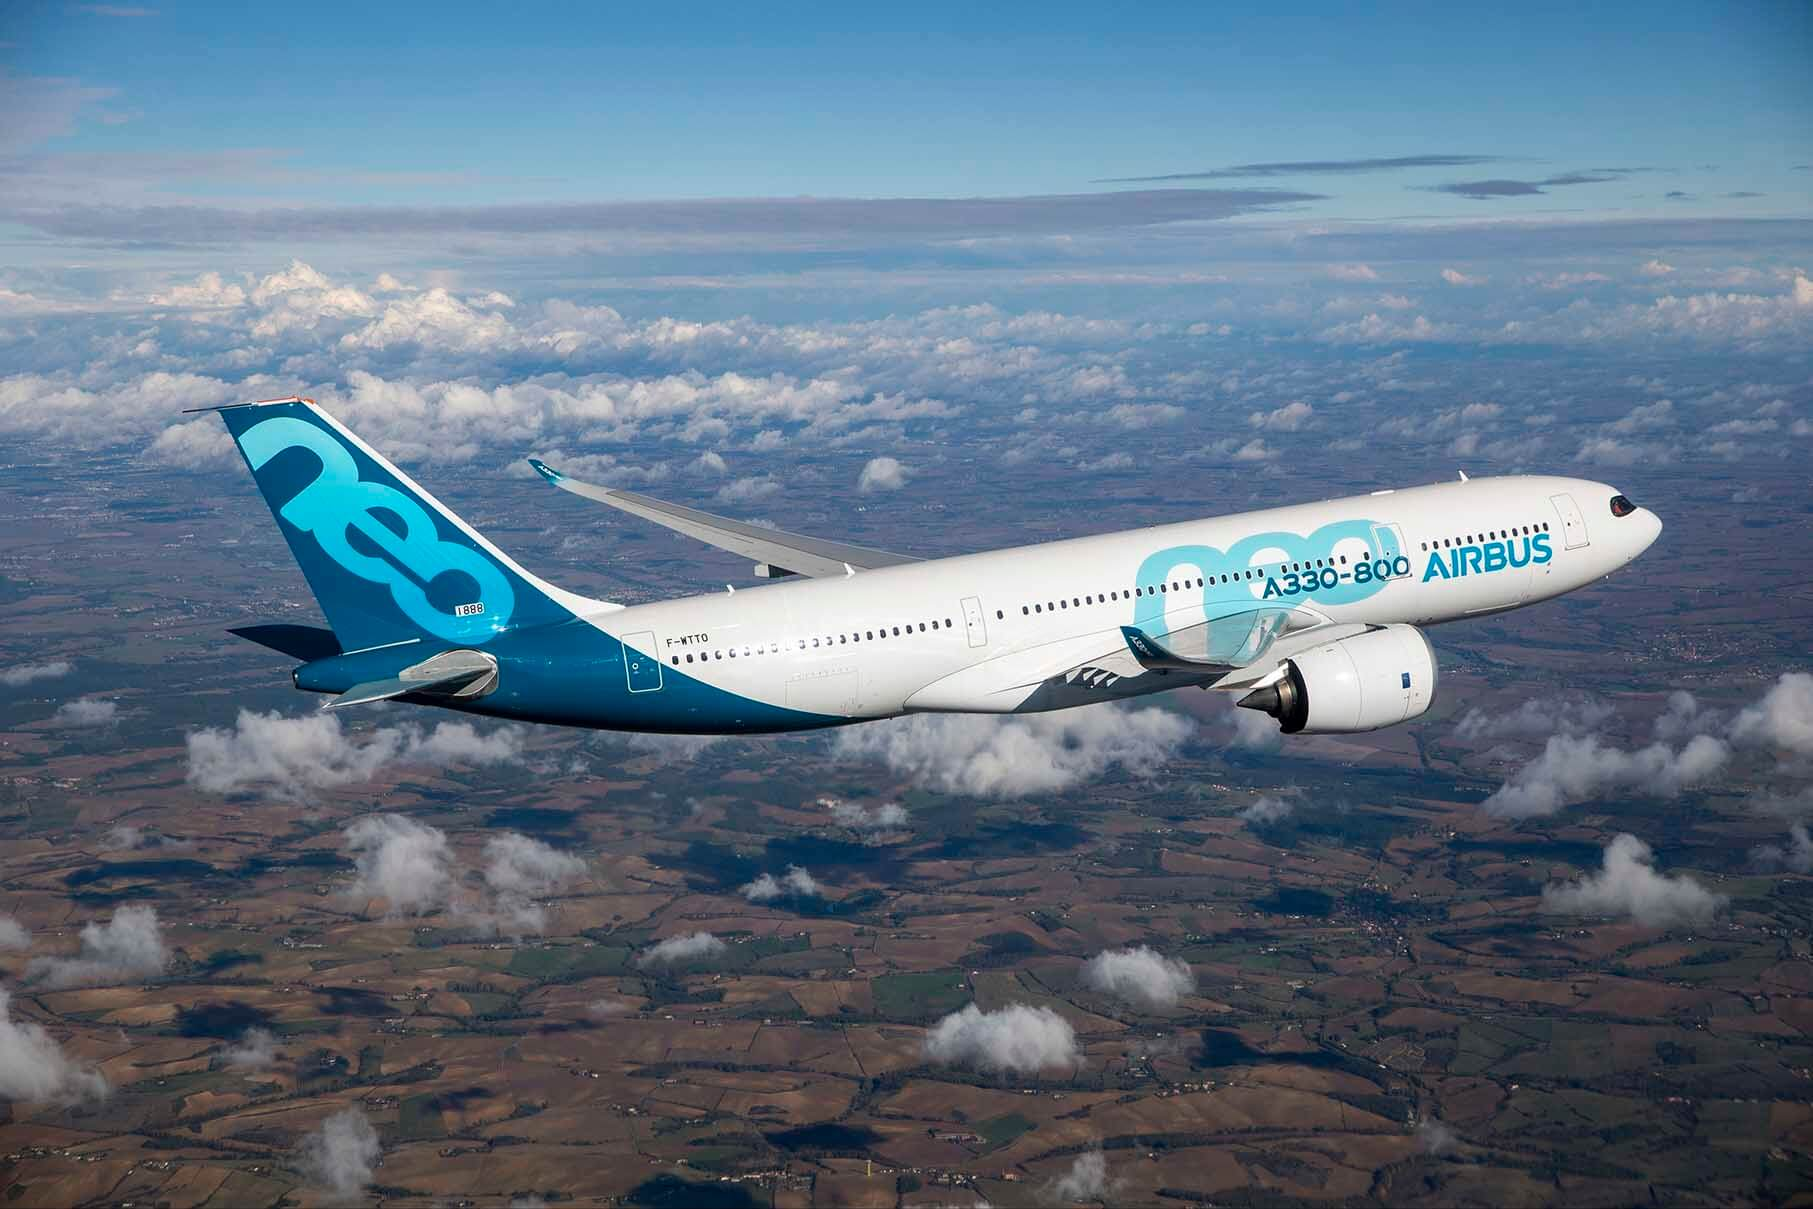 Airbus A330-800 receives EASA Type Certification